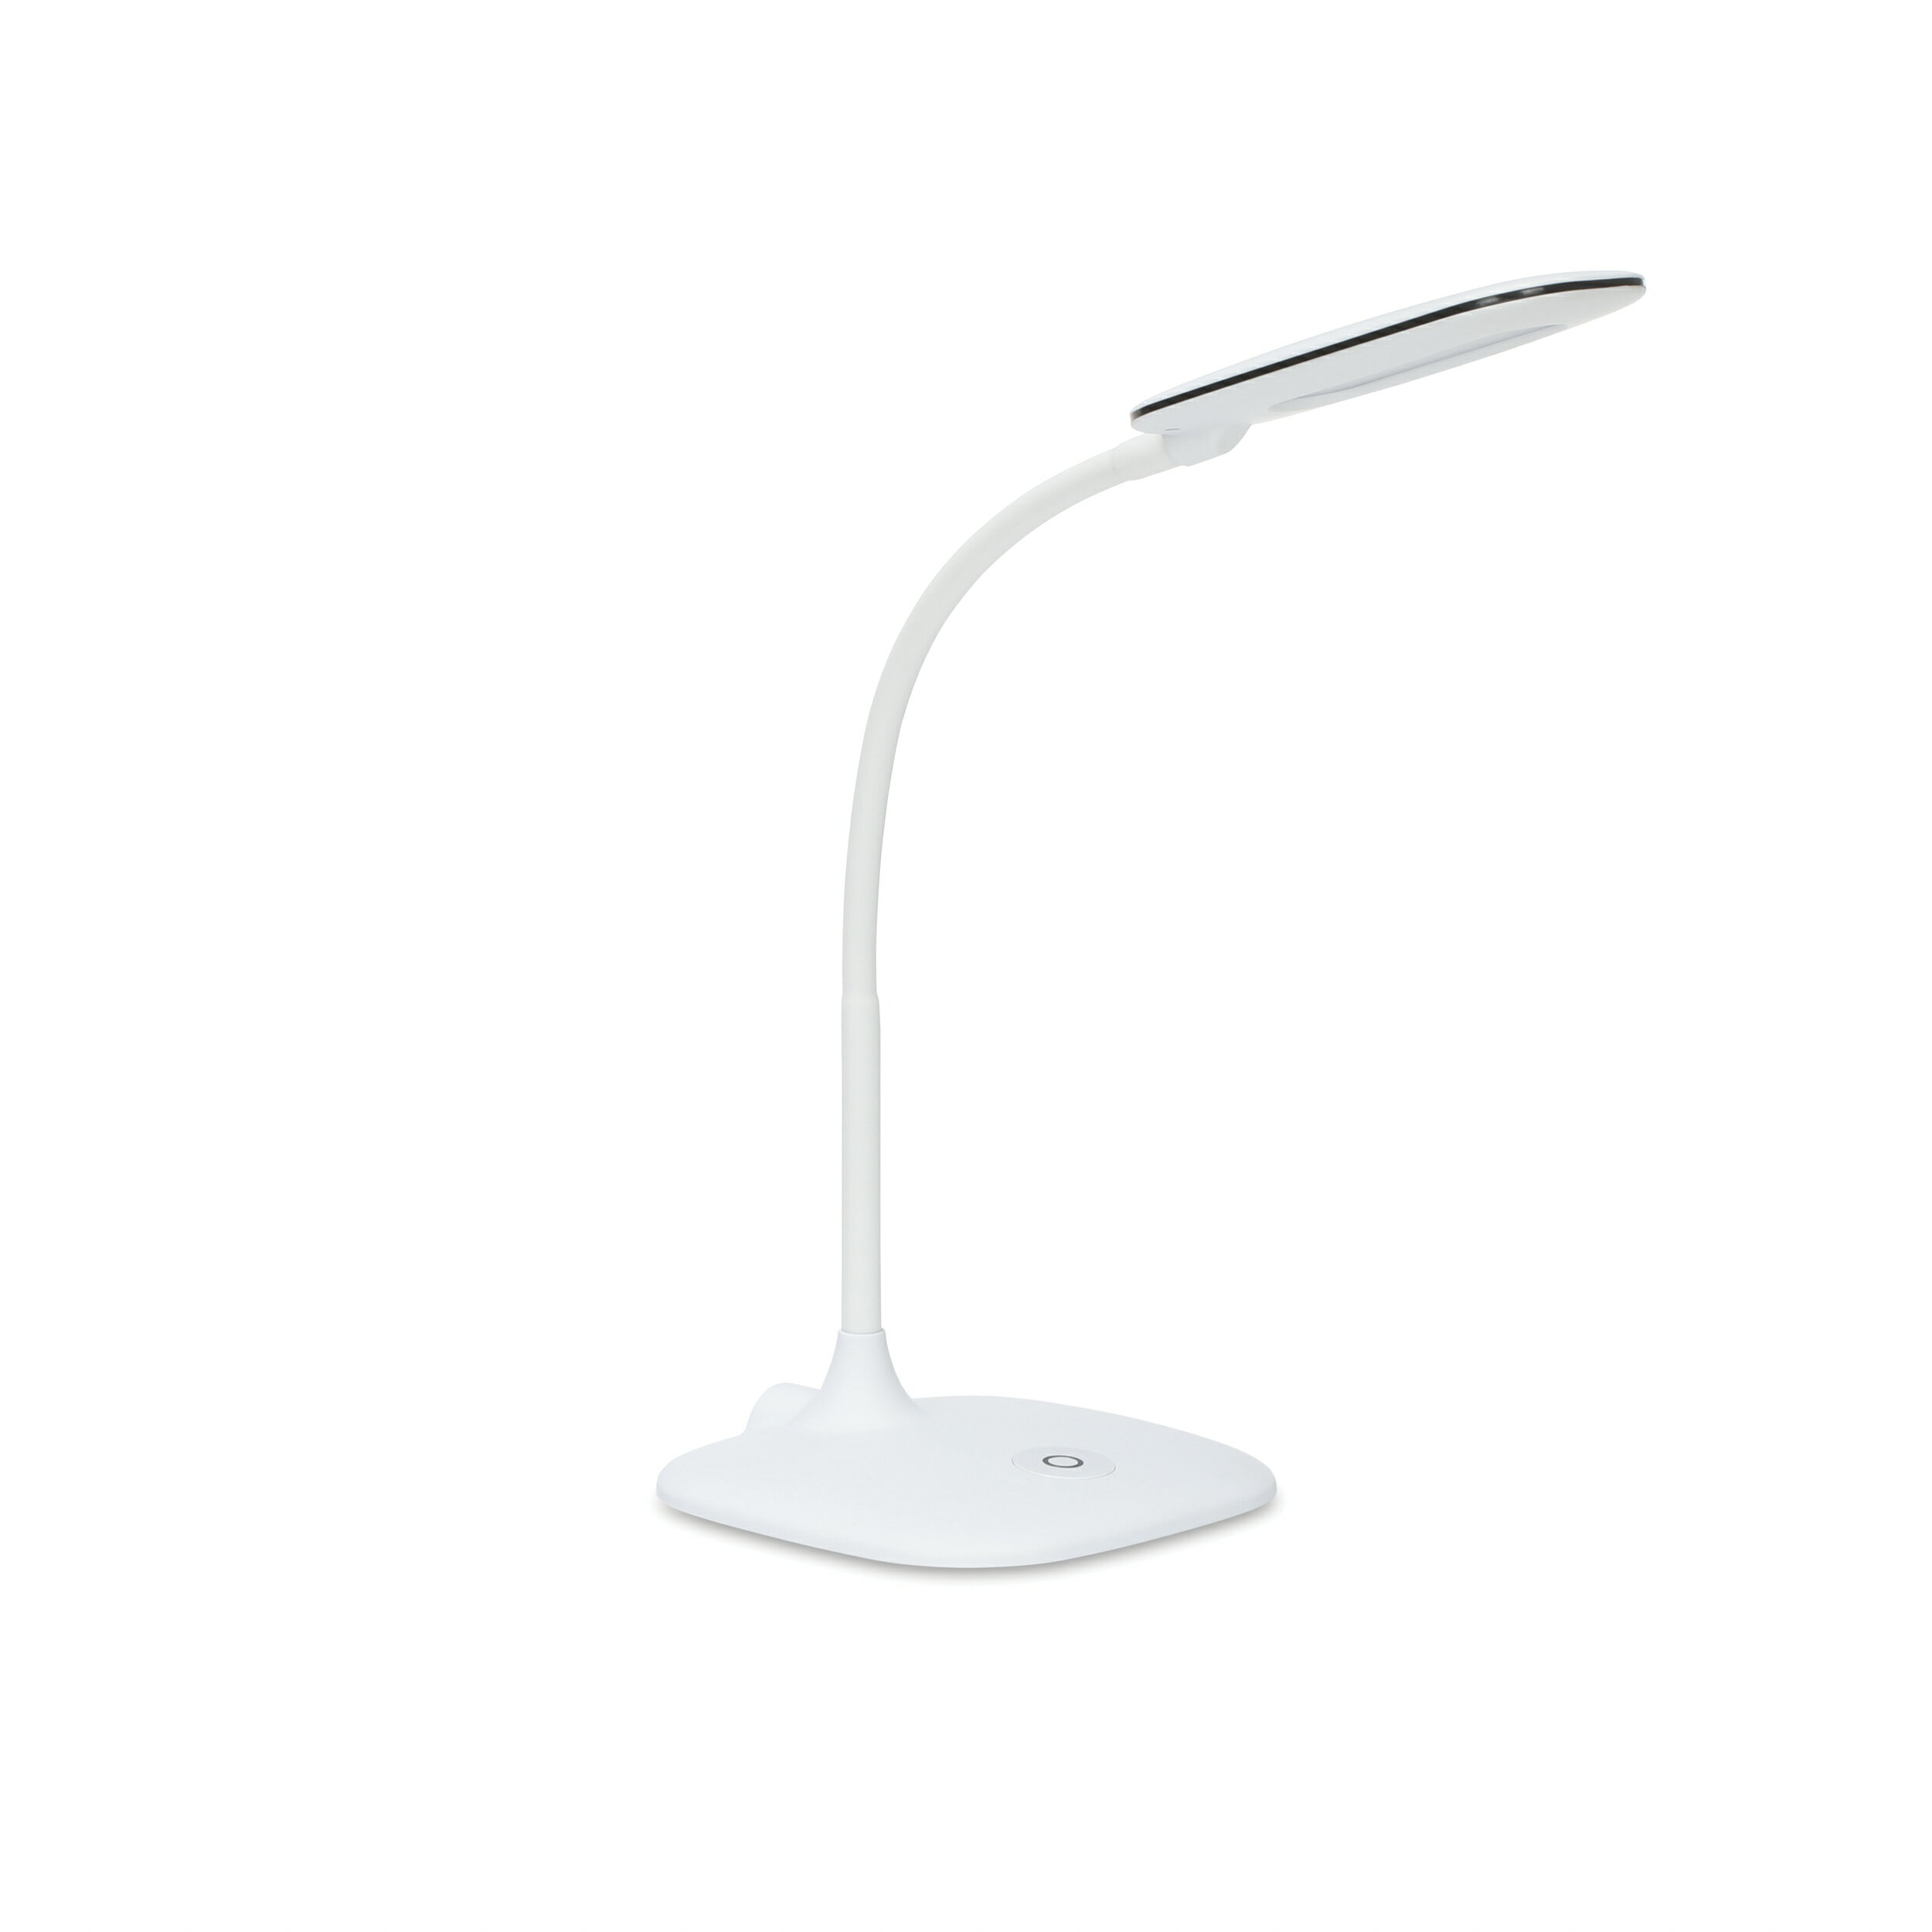 Ofm Ess 9003 Wht Essentials Led Desk Lamp With Touch Control White 0